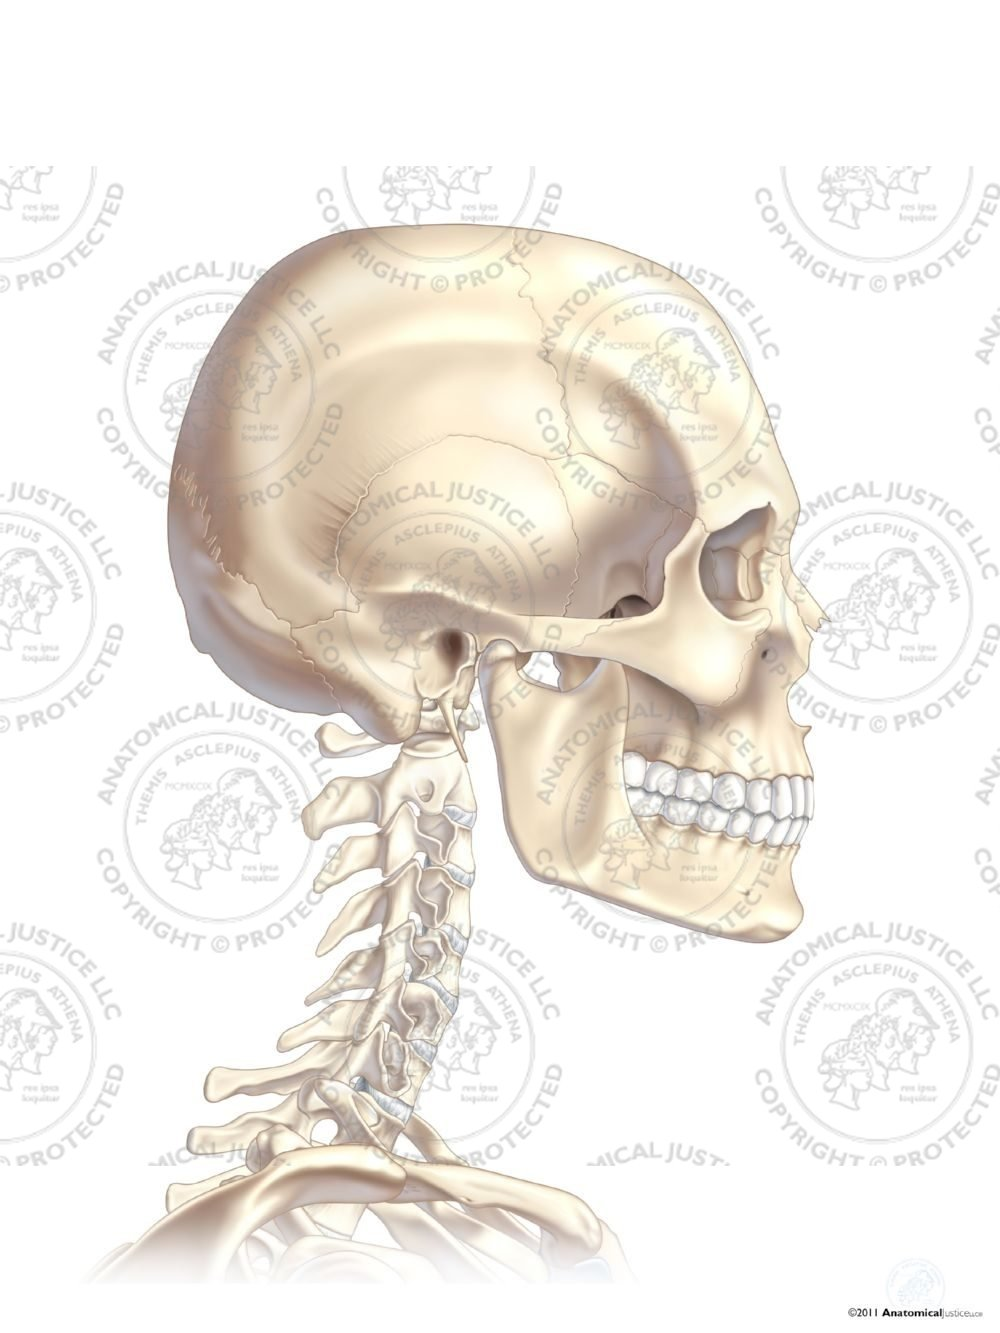 Right Lateral Skull And Neck No Text Anatomical Justice